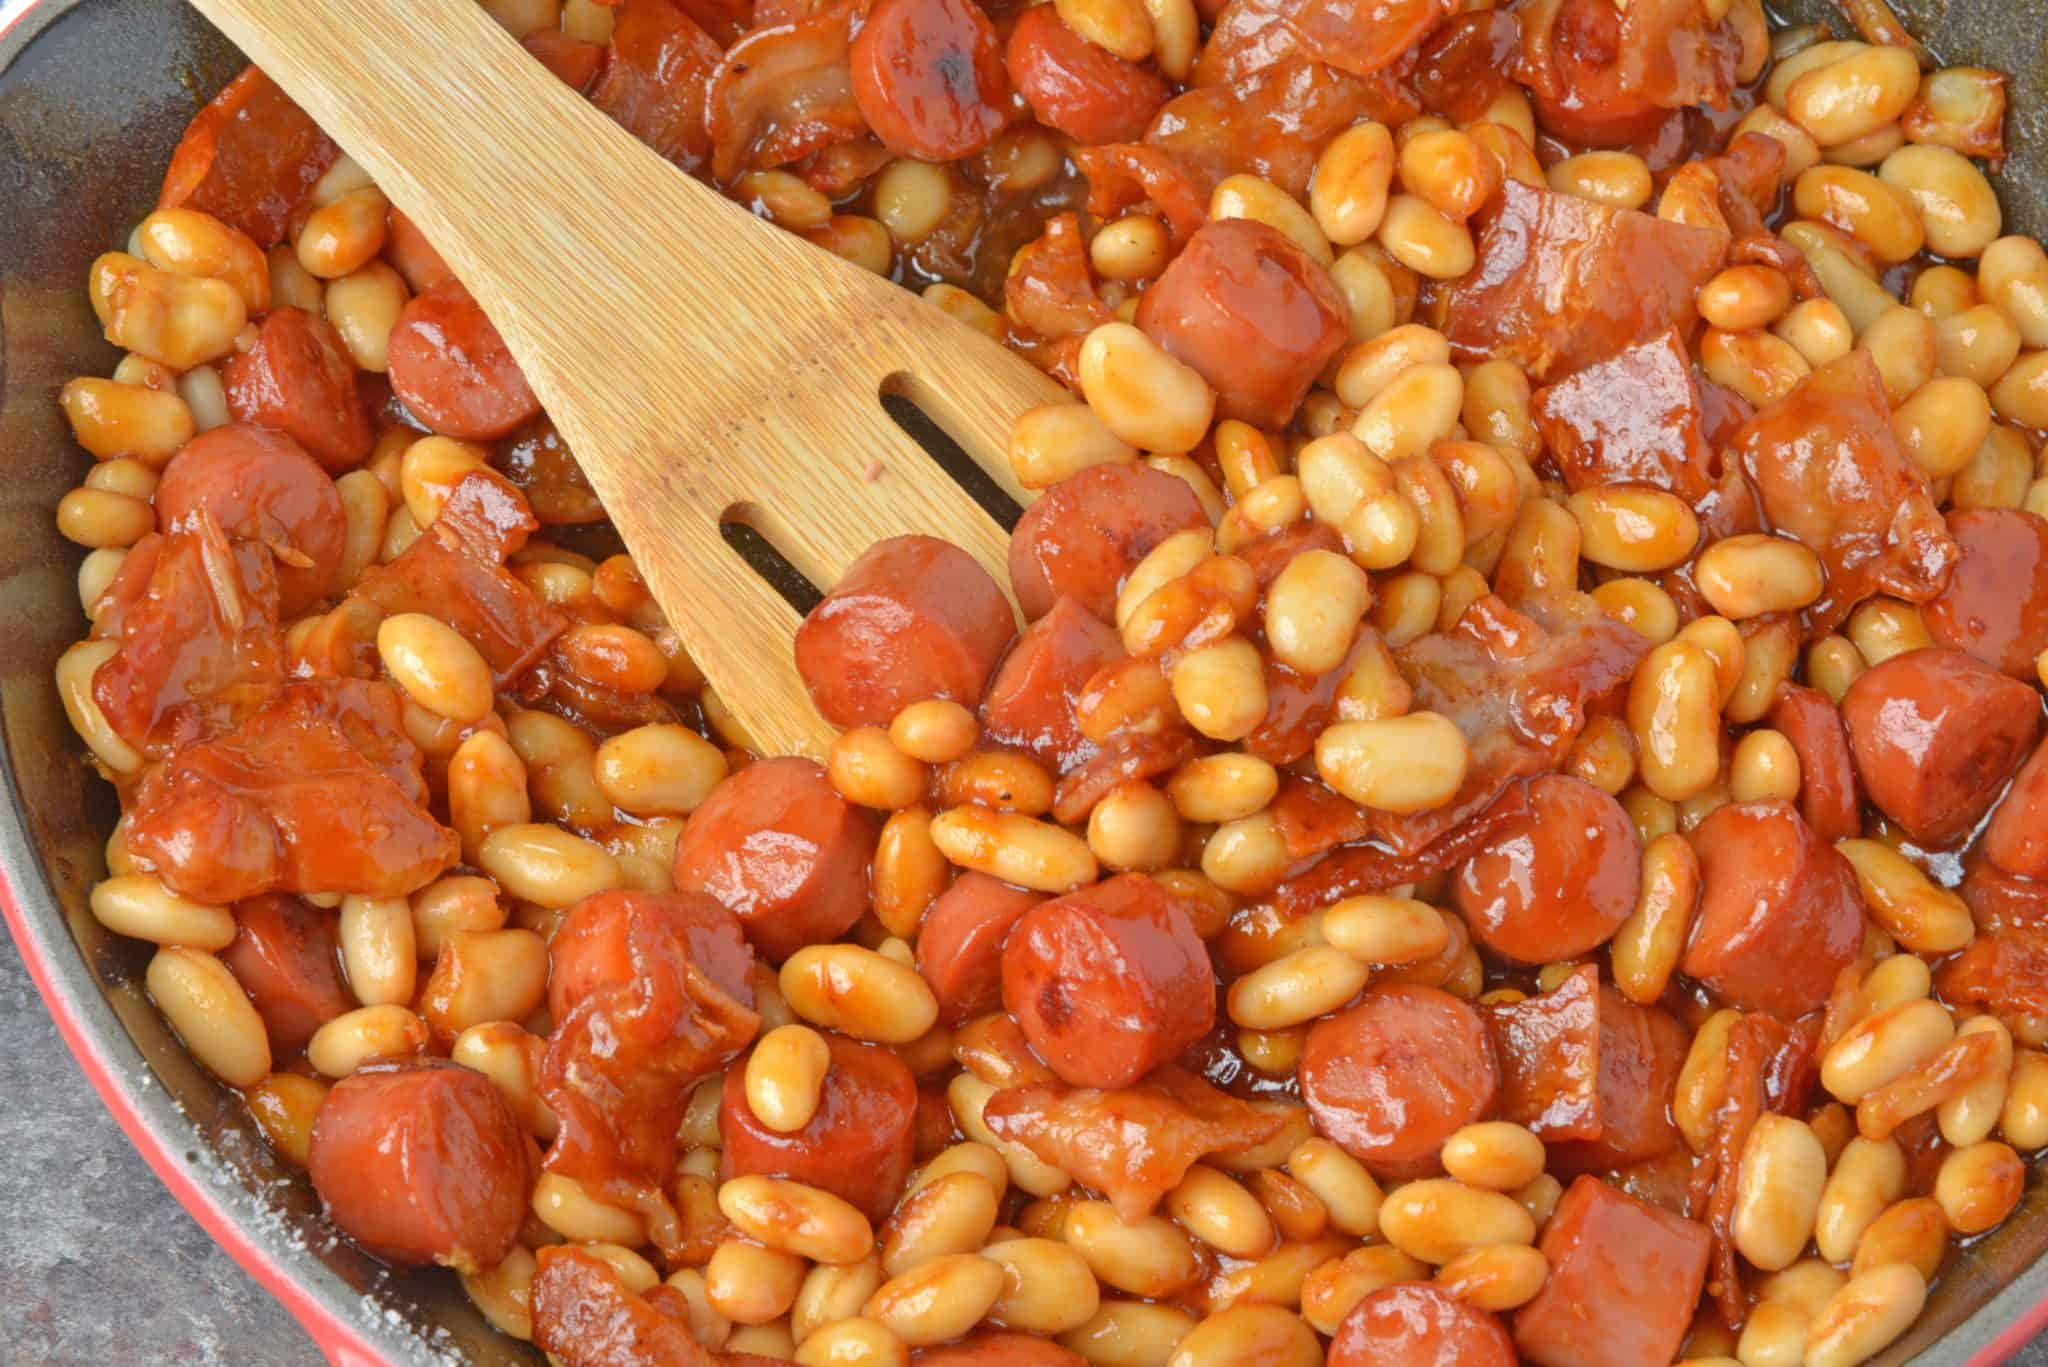 Franks and beans in a skillet